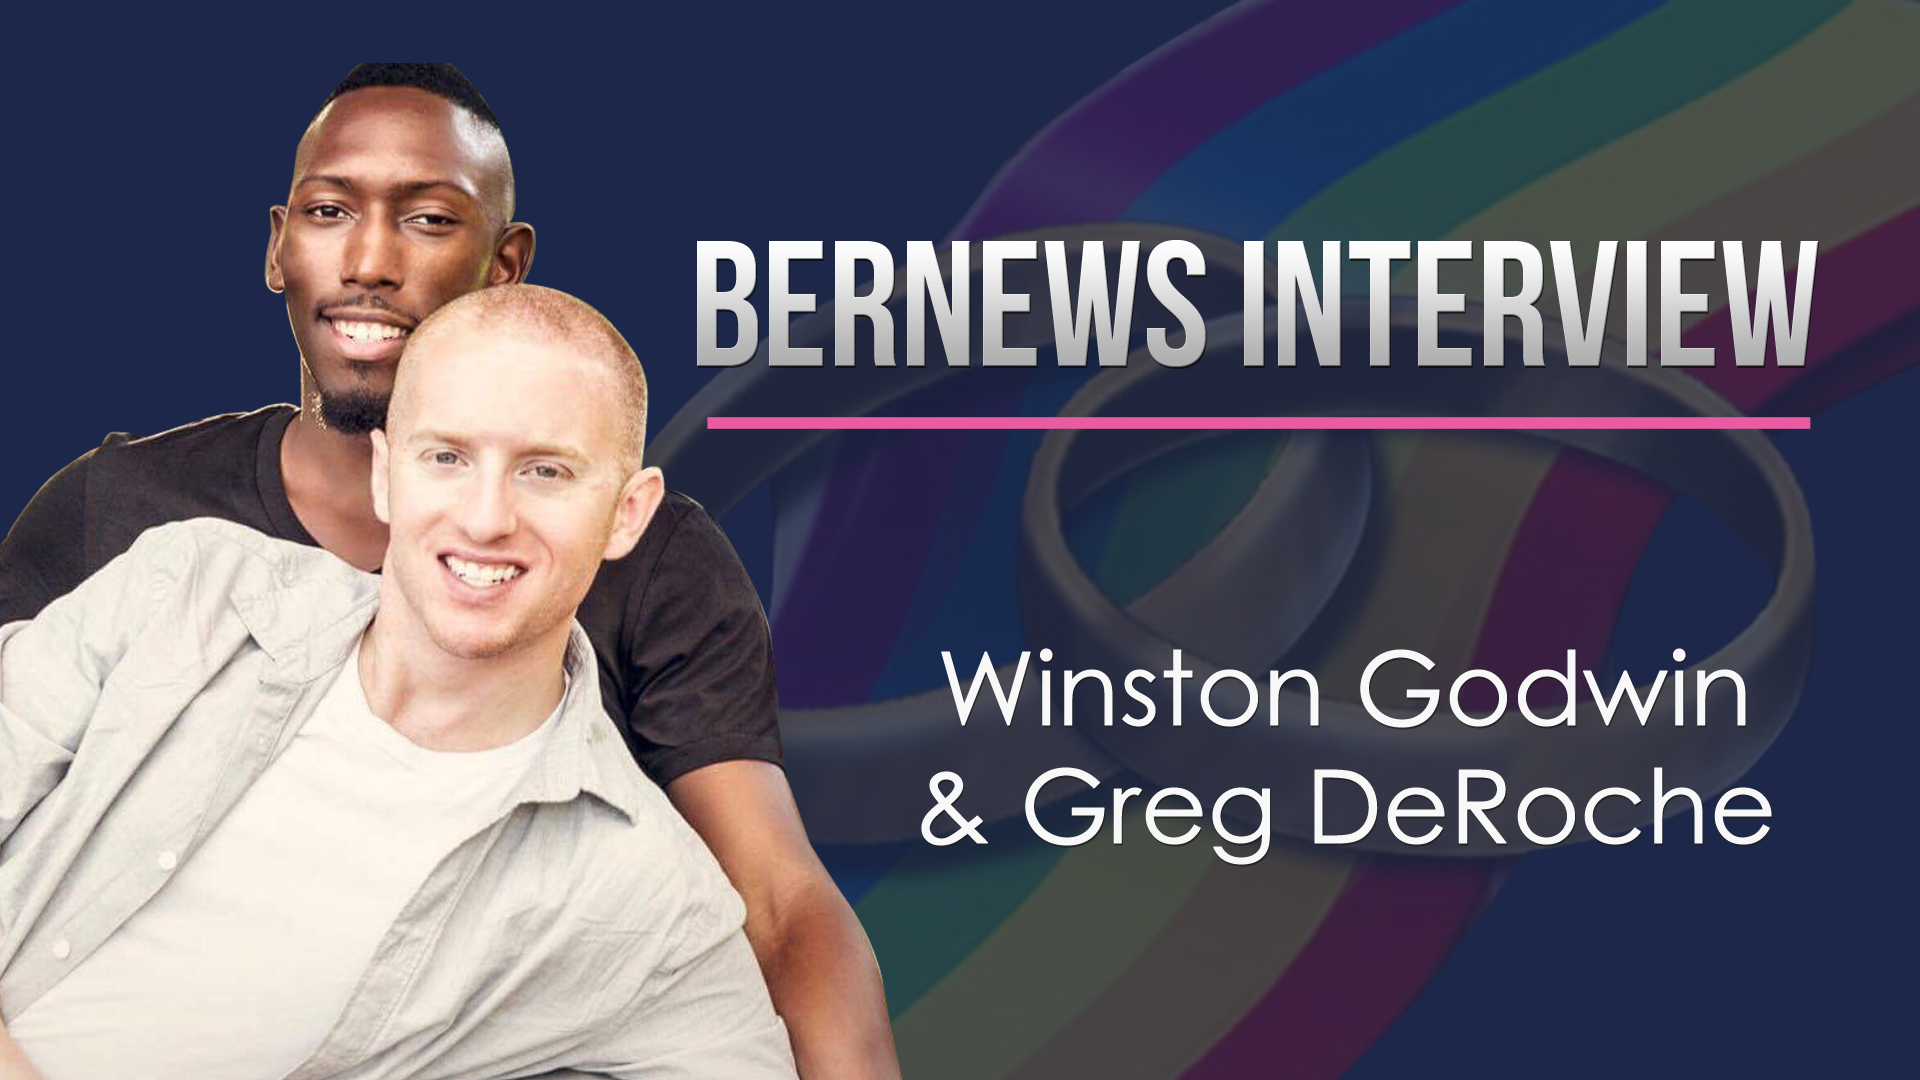 YTPH Bernews Interview with Winston Godwin 1 ssm